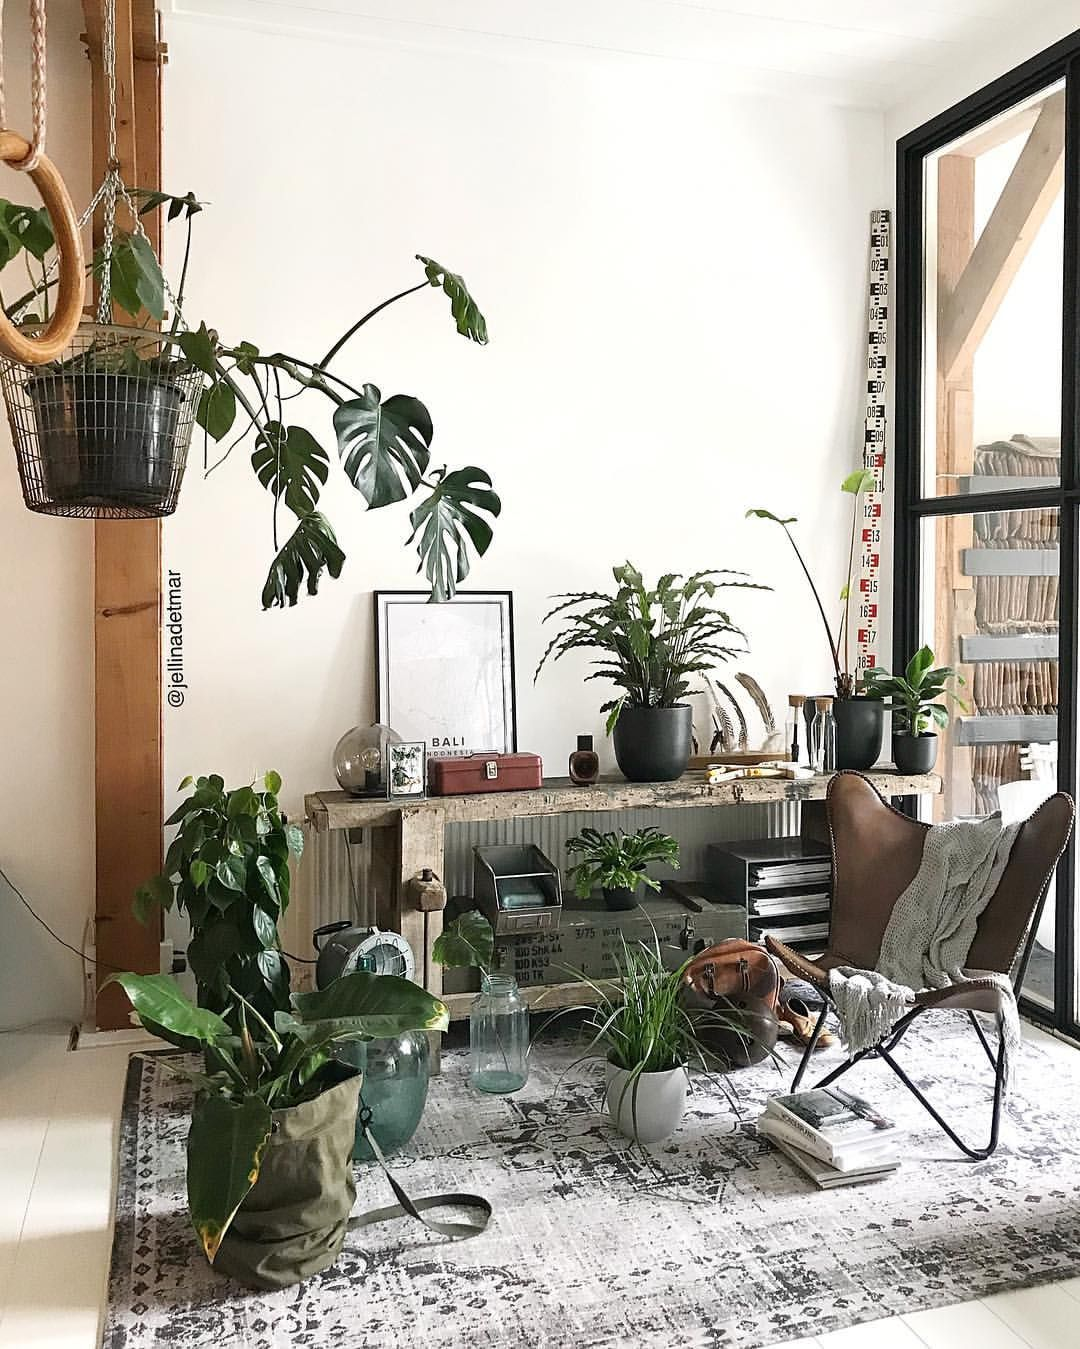 Pin by Mylène Colmar on Ideas for home | Pinterest | Plants ...